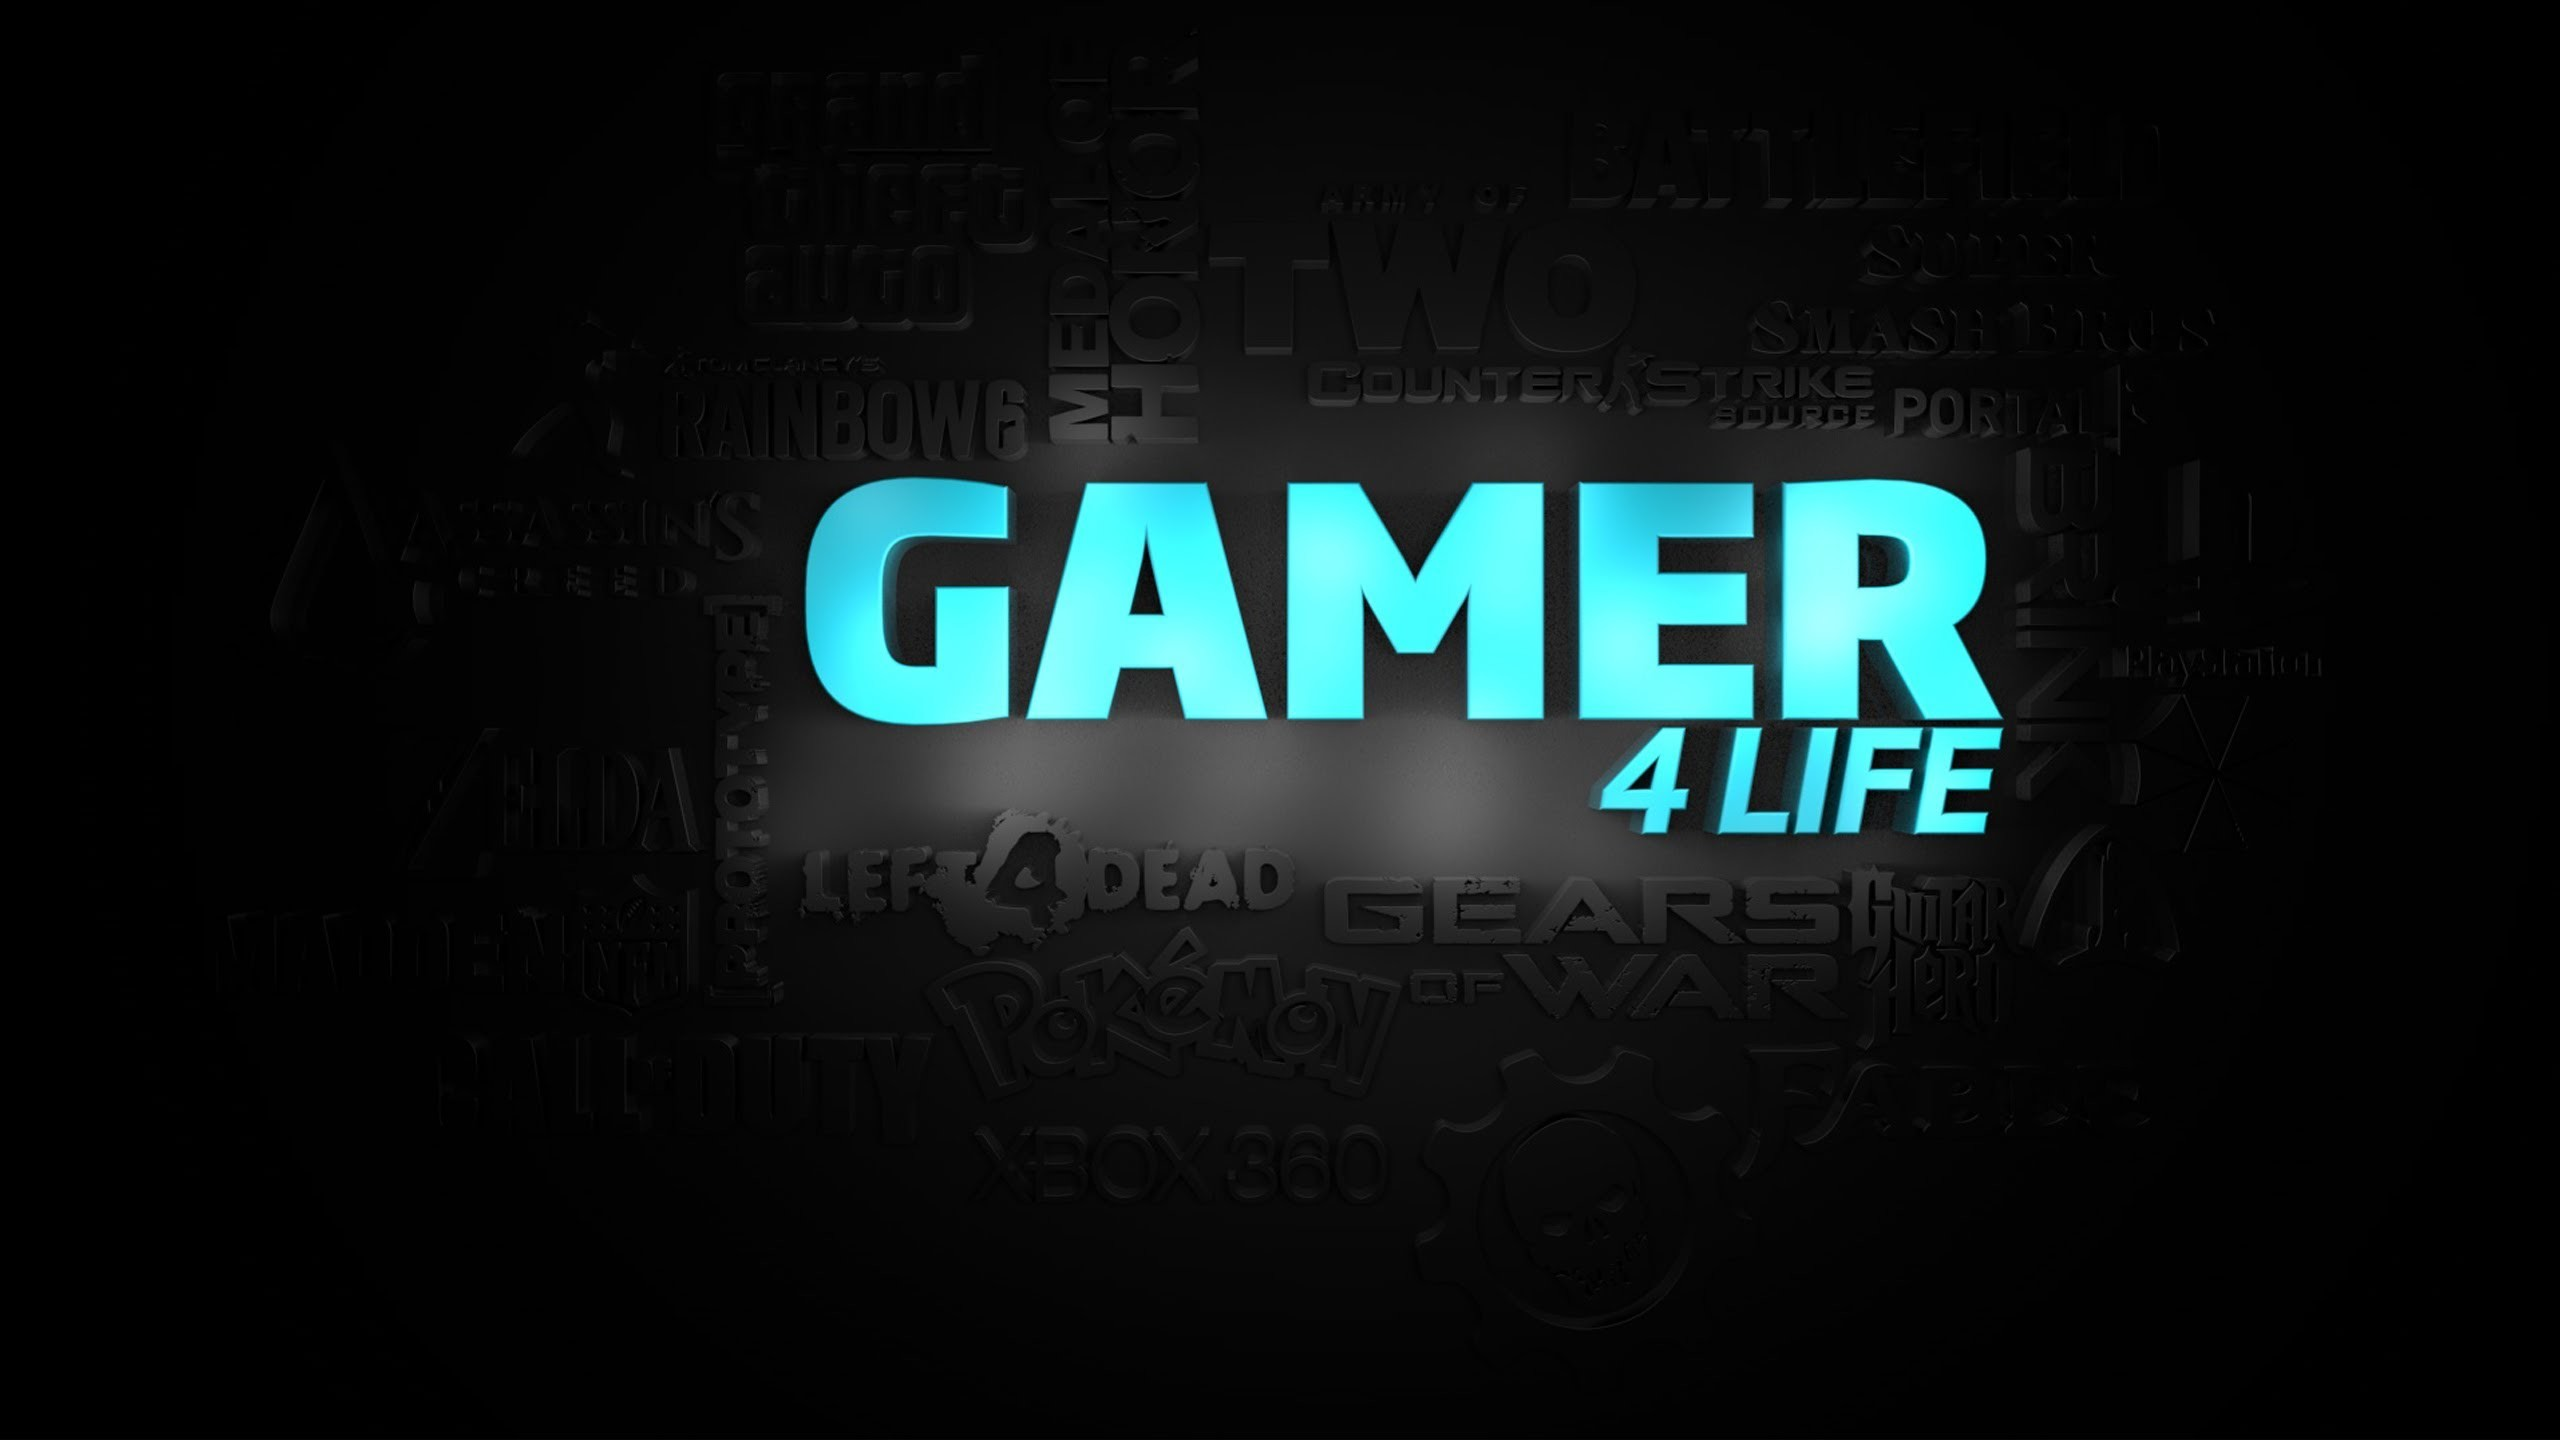 2560x1440 2048x1152 Game Wallpapers 2048x1152 Pixels Gaming